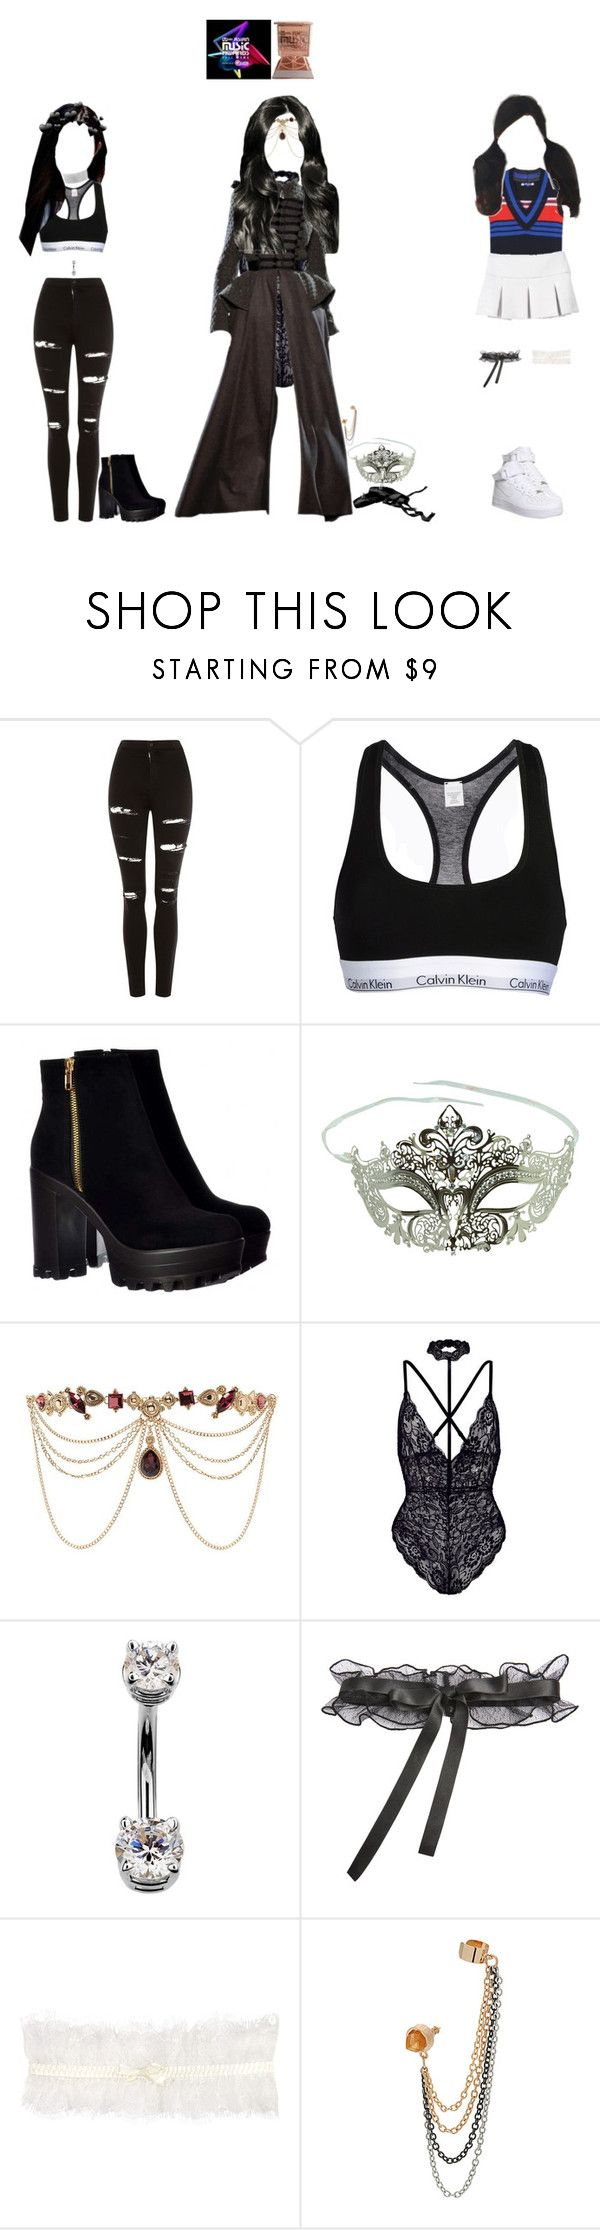 """Kaeligh, special stage MAMA"" by kaelighofficial ❤ liked on Polyvore featuring Topshop, Calvin Klein Underwear, Masquerade, Forever 21, Miu Miu, La Perla, Somerset by Alice Temperley, MAMA2017, mama2017day1 and mama2017performance"